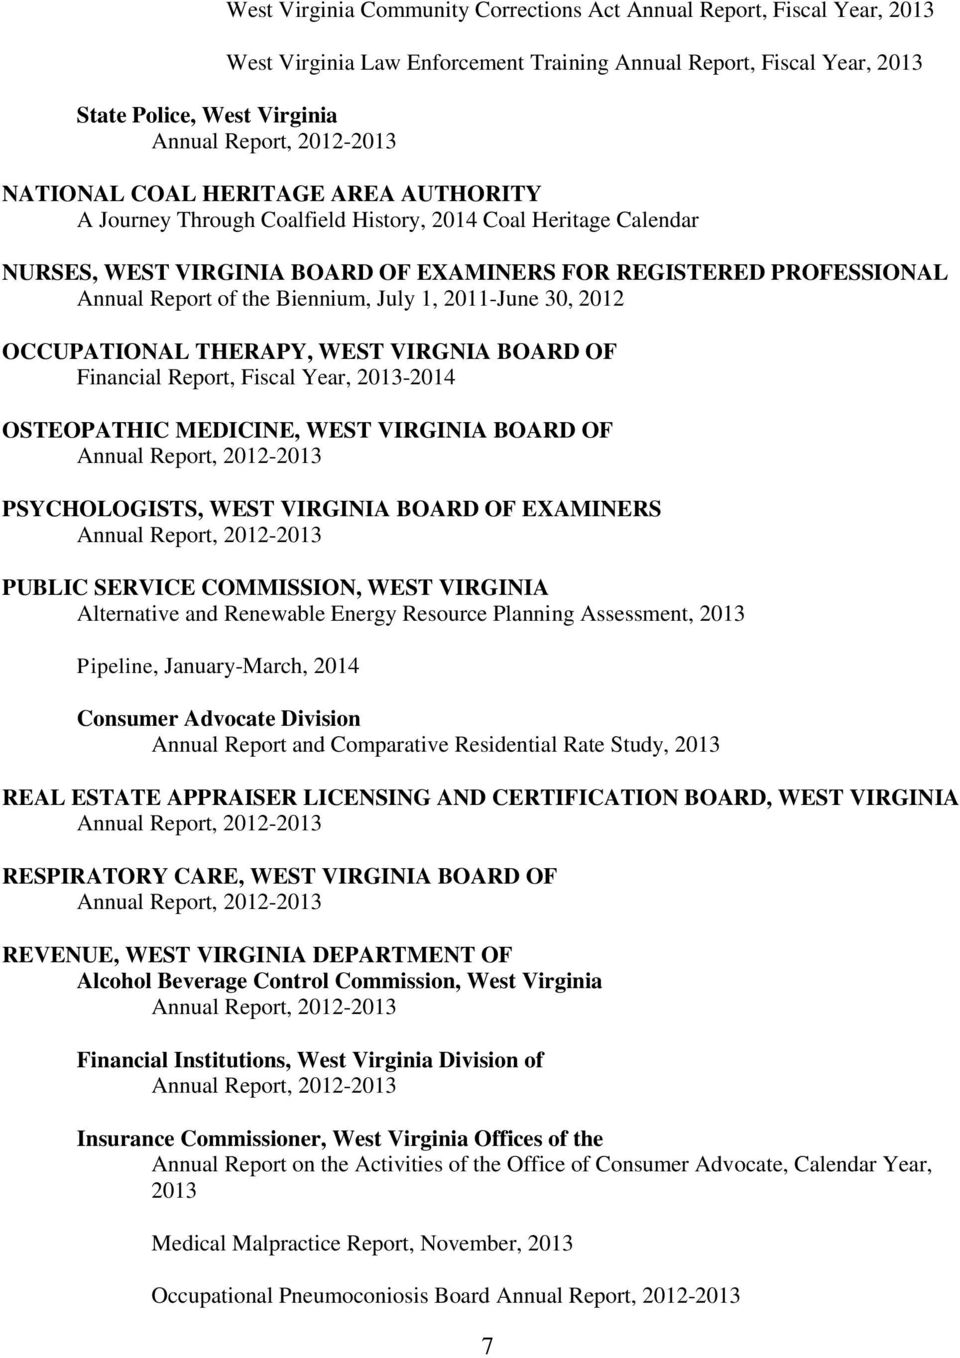 30, 2012 OCCUPATIONAL THERAPY, WEST VIRGNIA BOARD OF Financial Report, Fiscal Year, 2013-2014 OSTEOPATHIC MEDICINE, WEST VIRGINIA BOARD OF PSYCHOLOGISTS, WEST VIRGINIA BOARD OF EXAMINERS PUBLIC